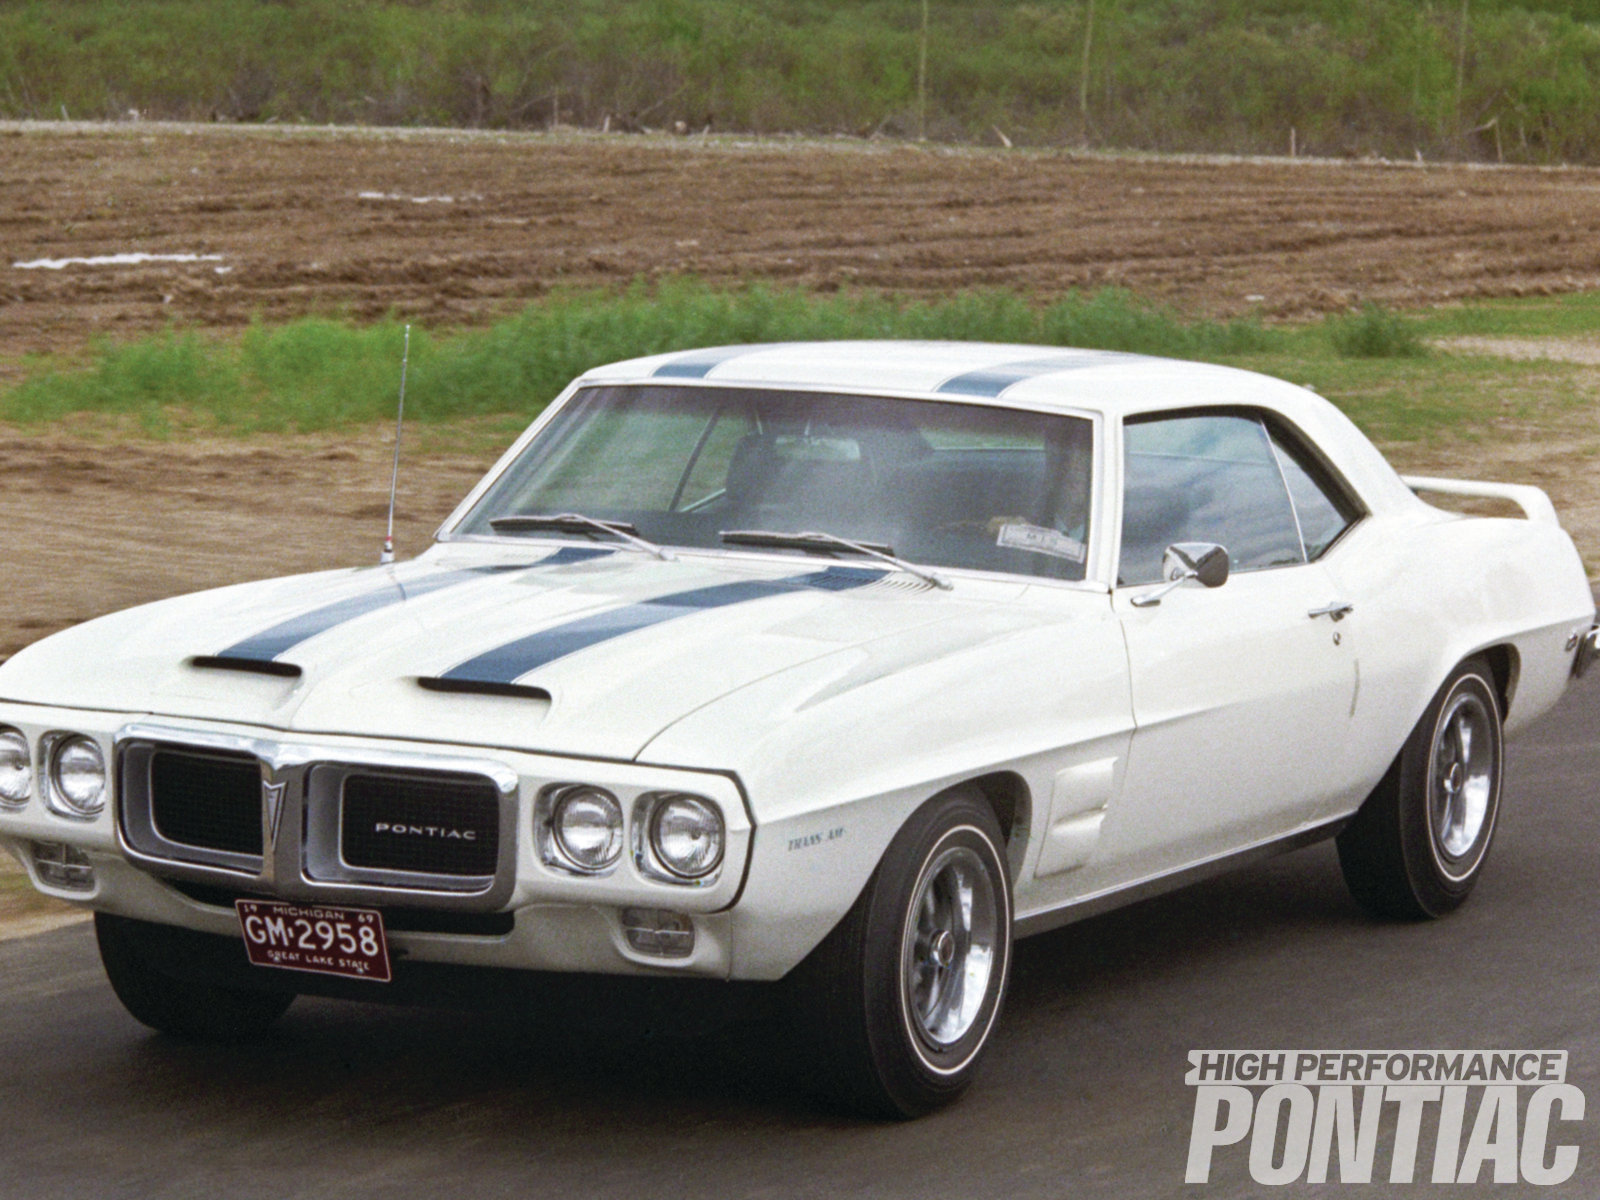 As this pre-production example shows, by April 25, 1969 (the date of this photo), Pontiac had the features of its production '69 Trans Am dialed in, including the hood, stripes, and decals. Note the front spoiler, which was a last minute addition approved by Pontiac's production engineers to defend against the vehicle's nose lift.